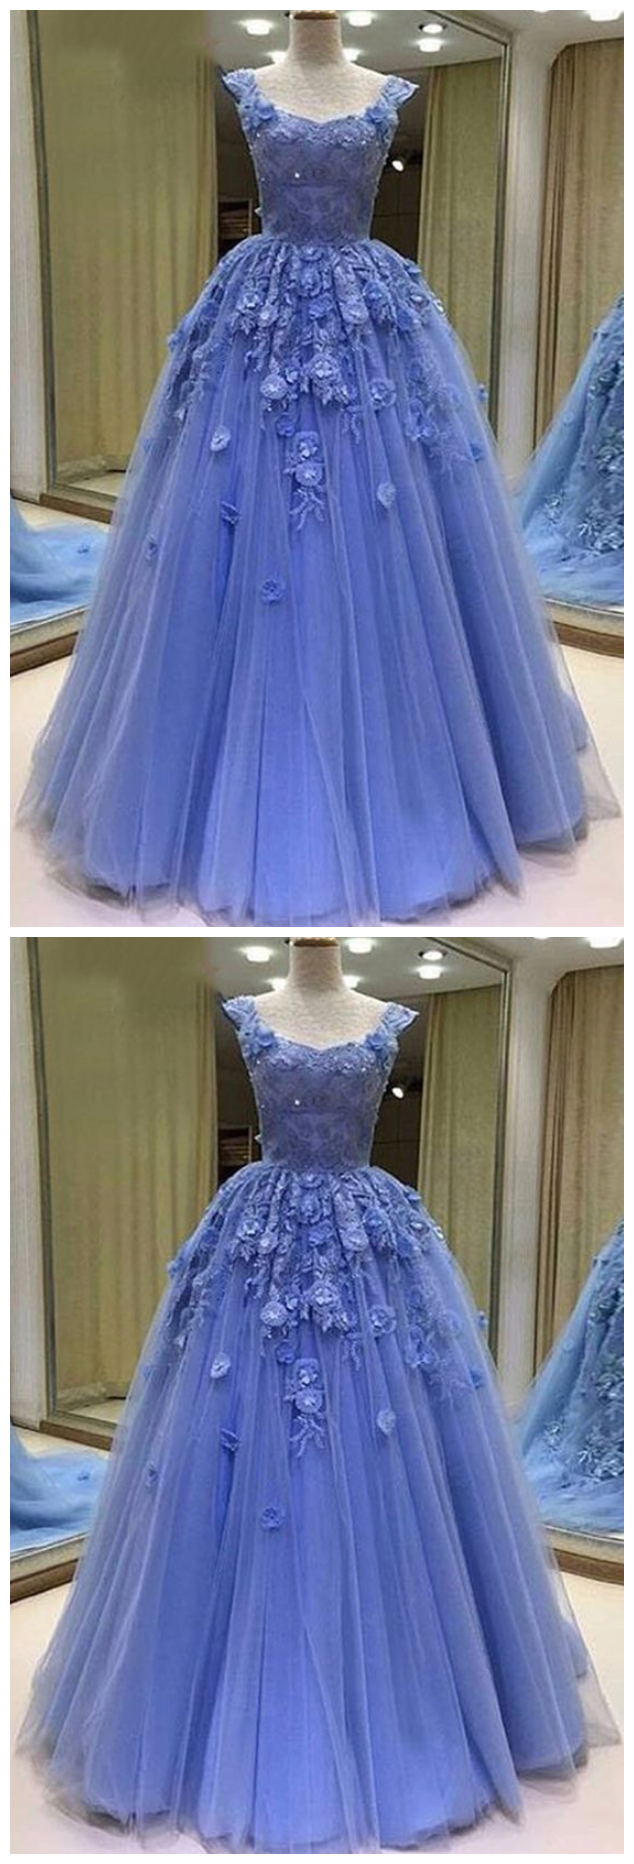 Sexy Tulle Prom Dress, Appliuqes Long Evening Dress,Formal Dress Sexy Tulle Prom